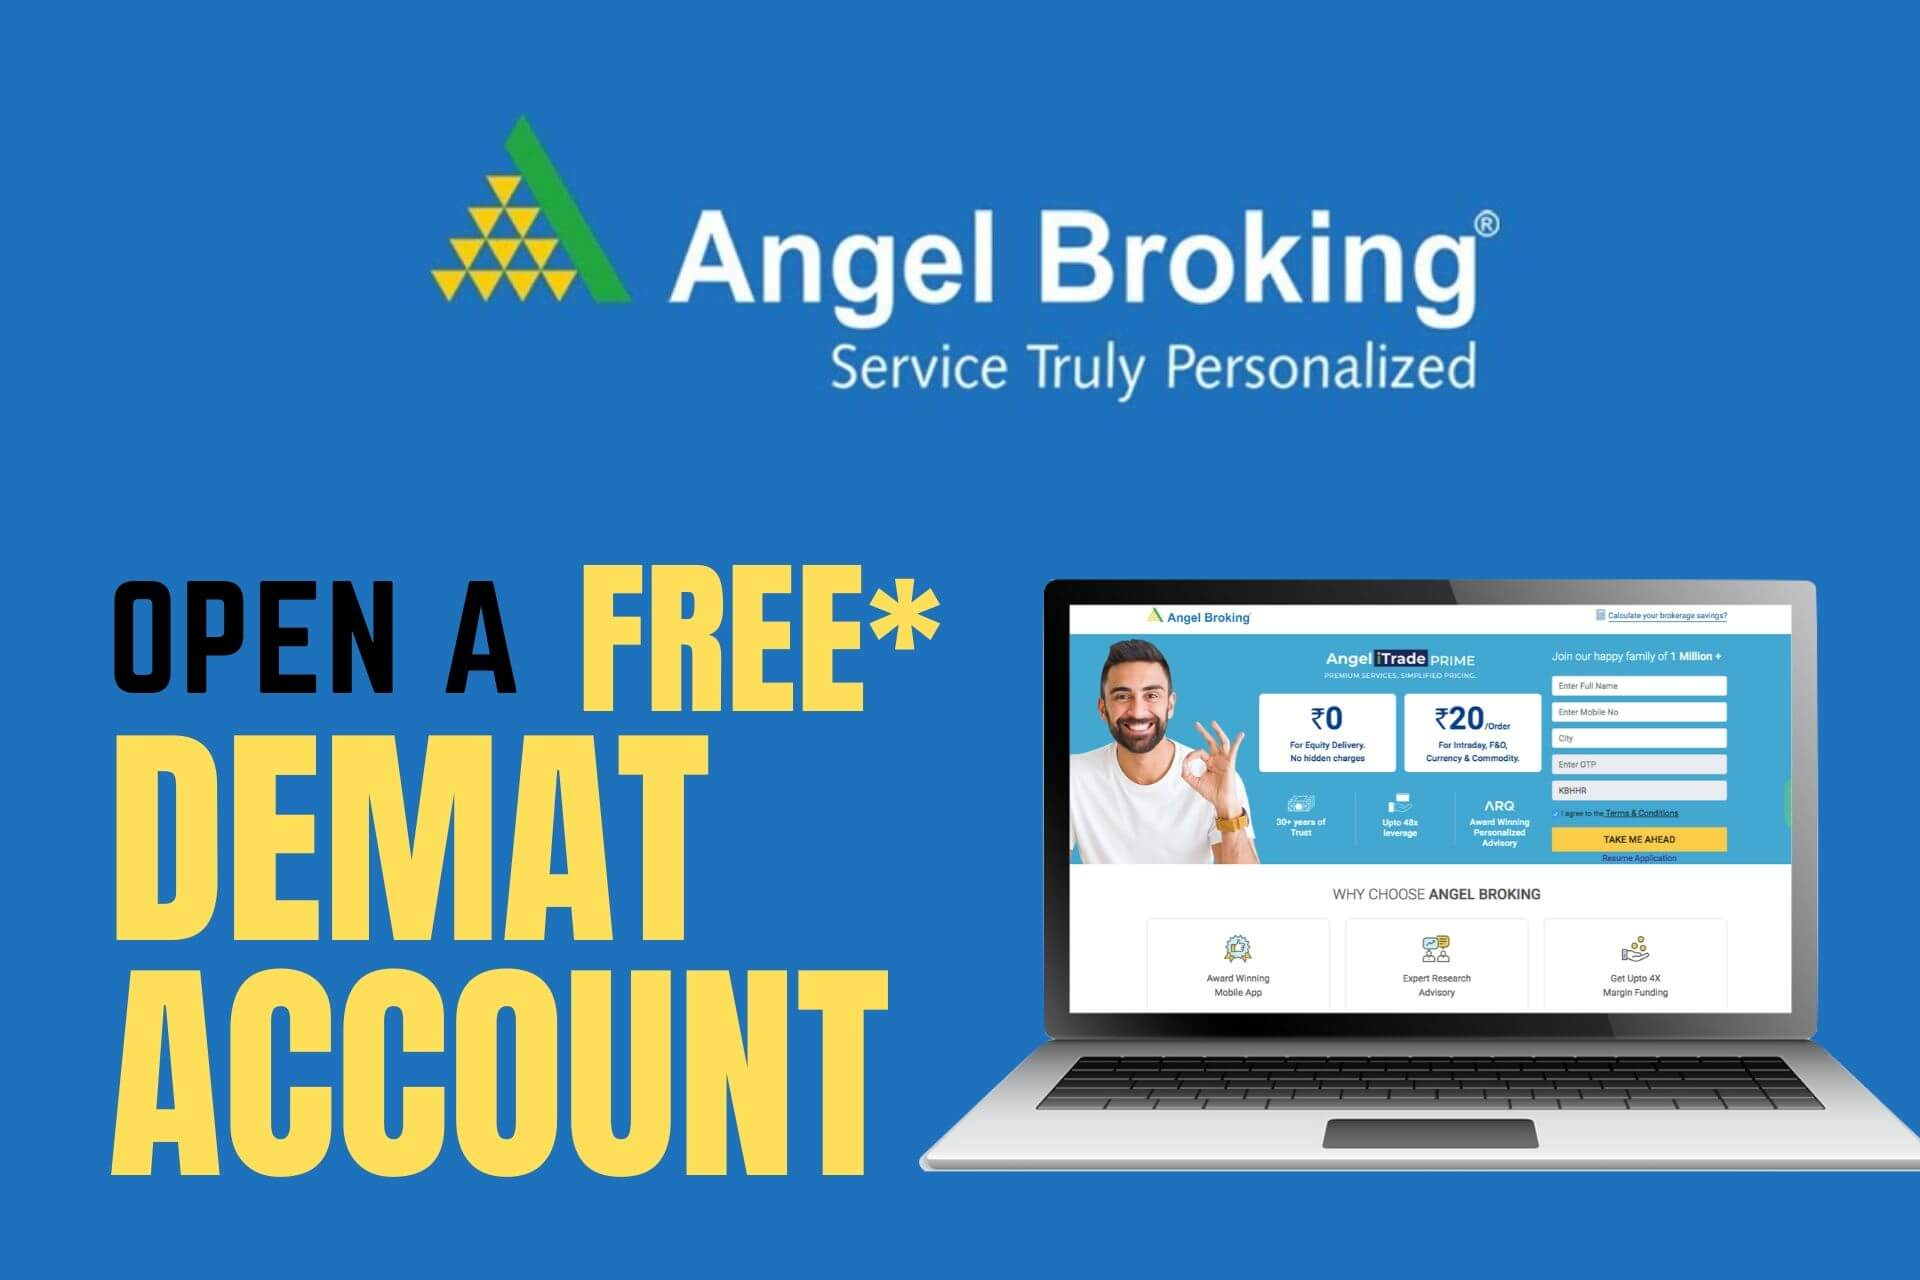 How to Open Demat Account at Angel Broking?